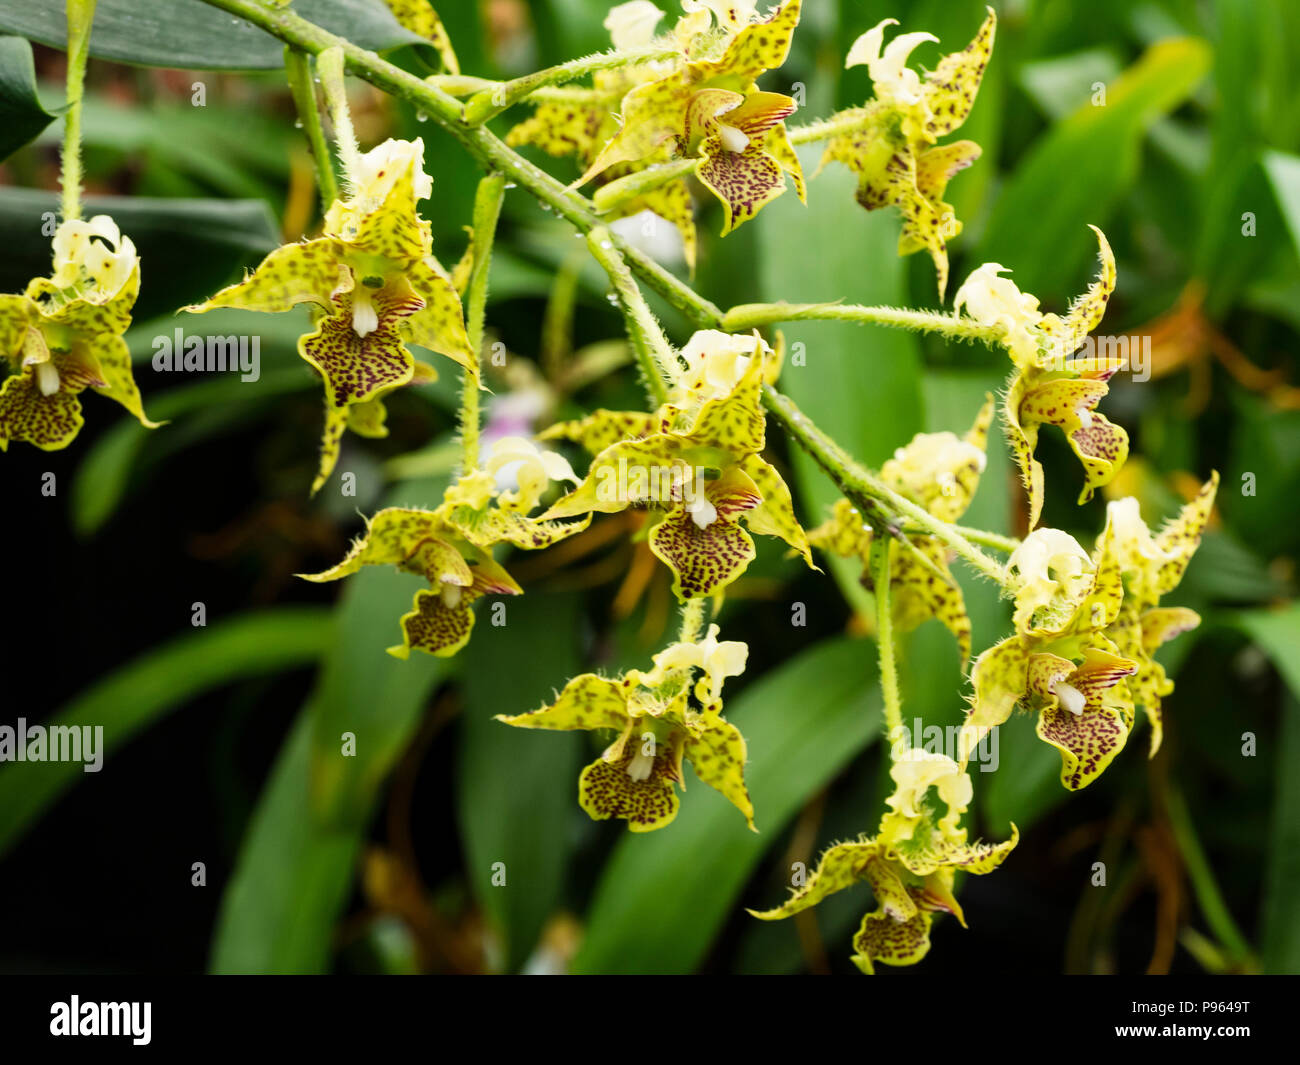 Flowers of the New Guinea epiphytic orchid, Dendrobium polysema,  flowering in summer - Stock Image